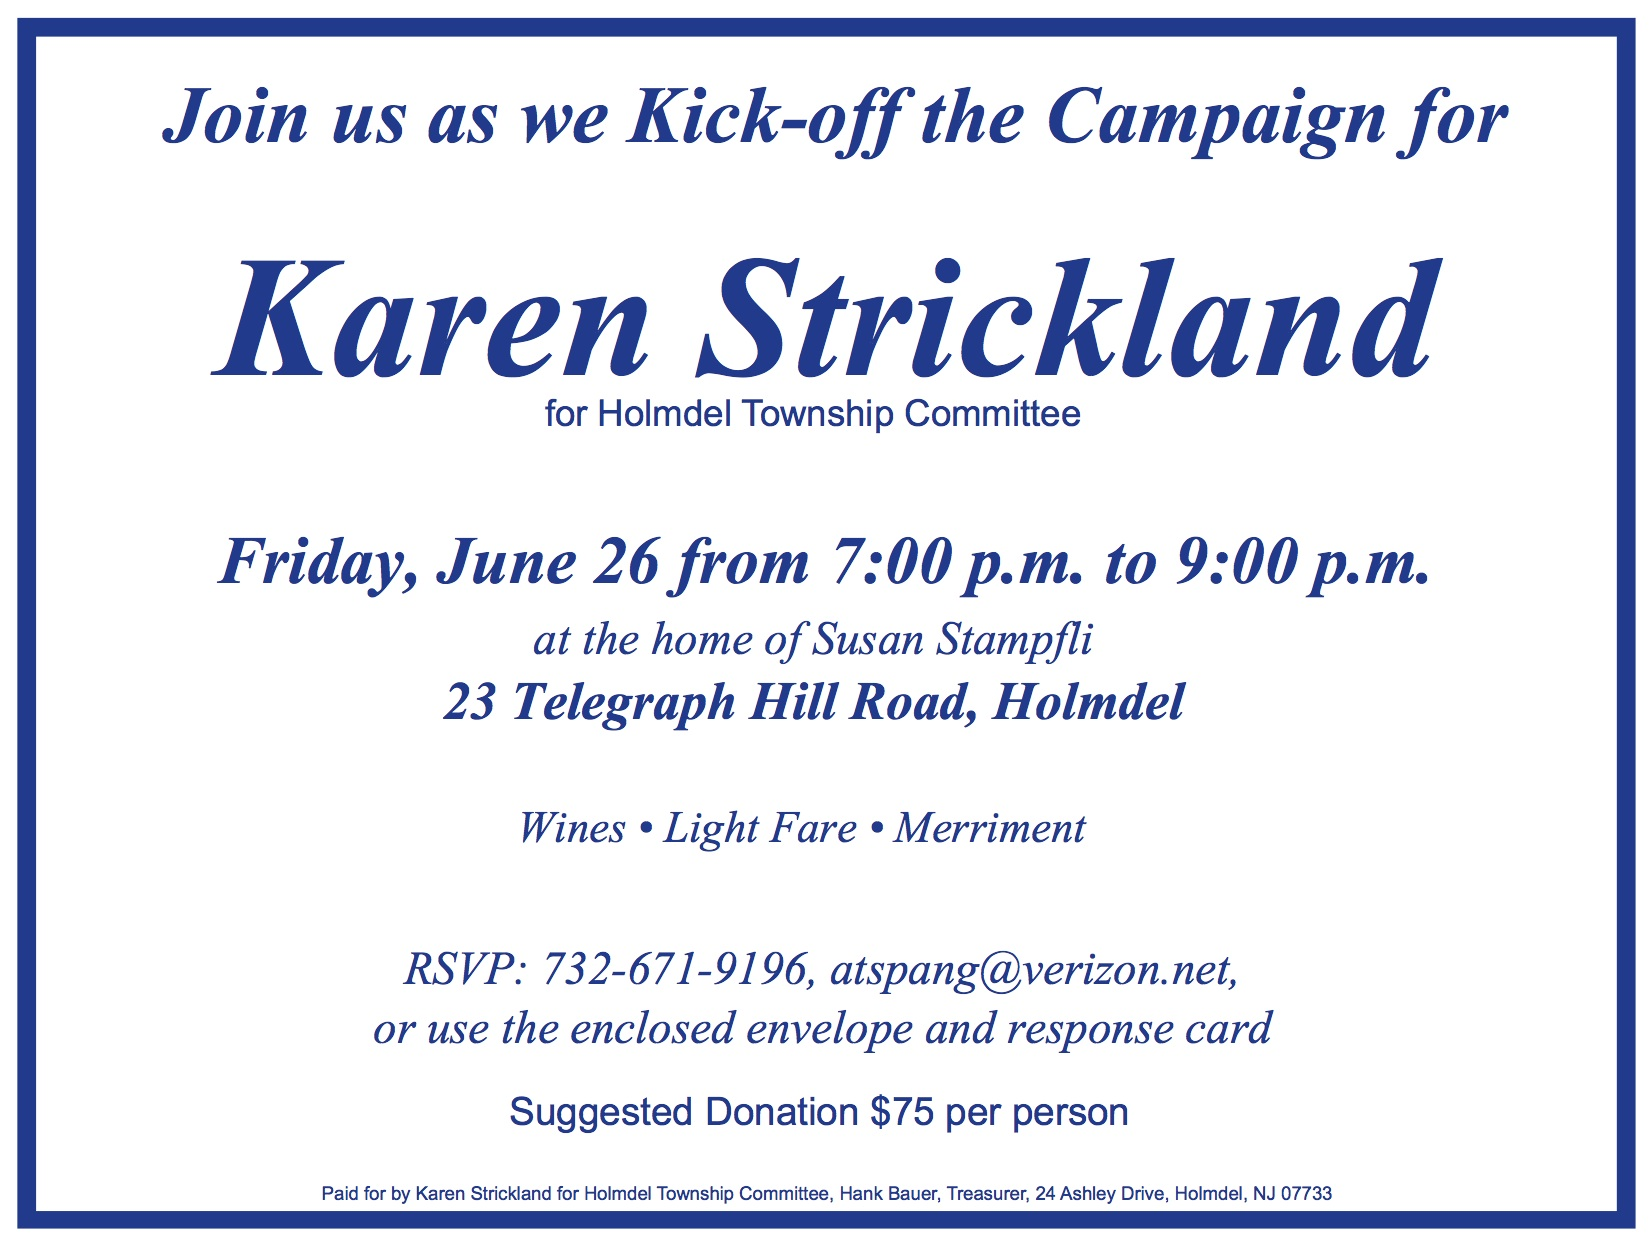 Strickland_Invitation_Text_060515.jpg